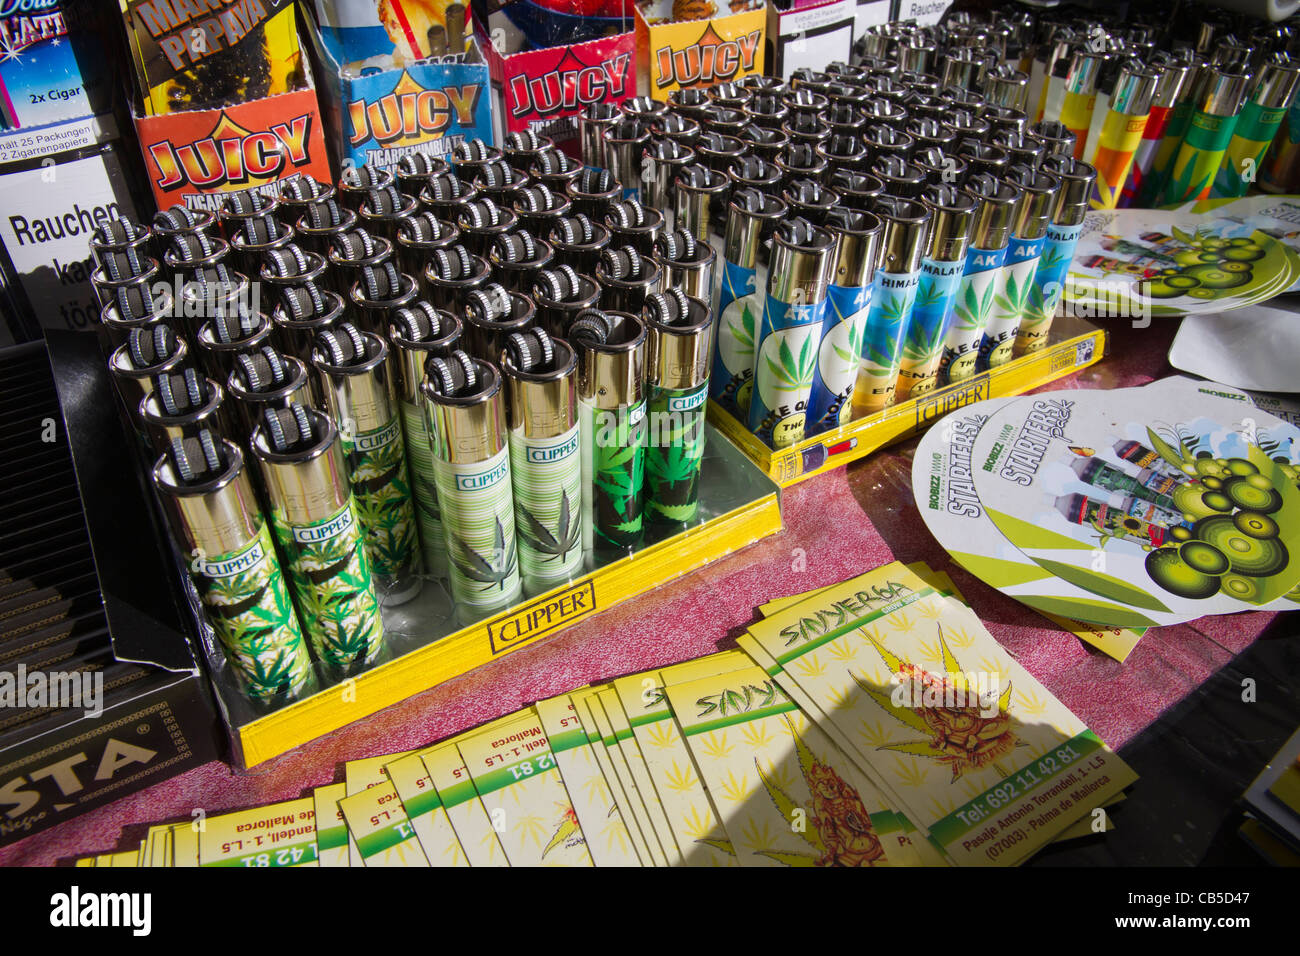 lighters gadget with hemp cannabis printed for sale - Stock Image